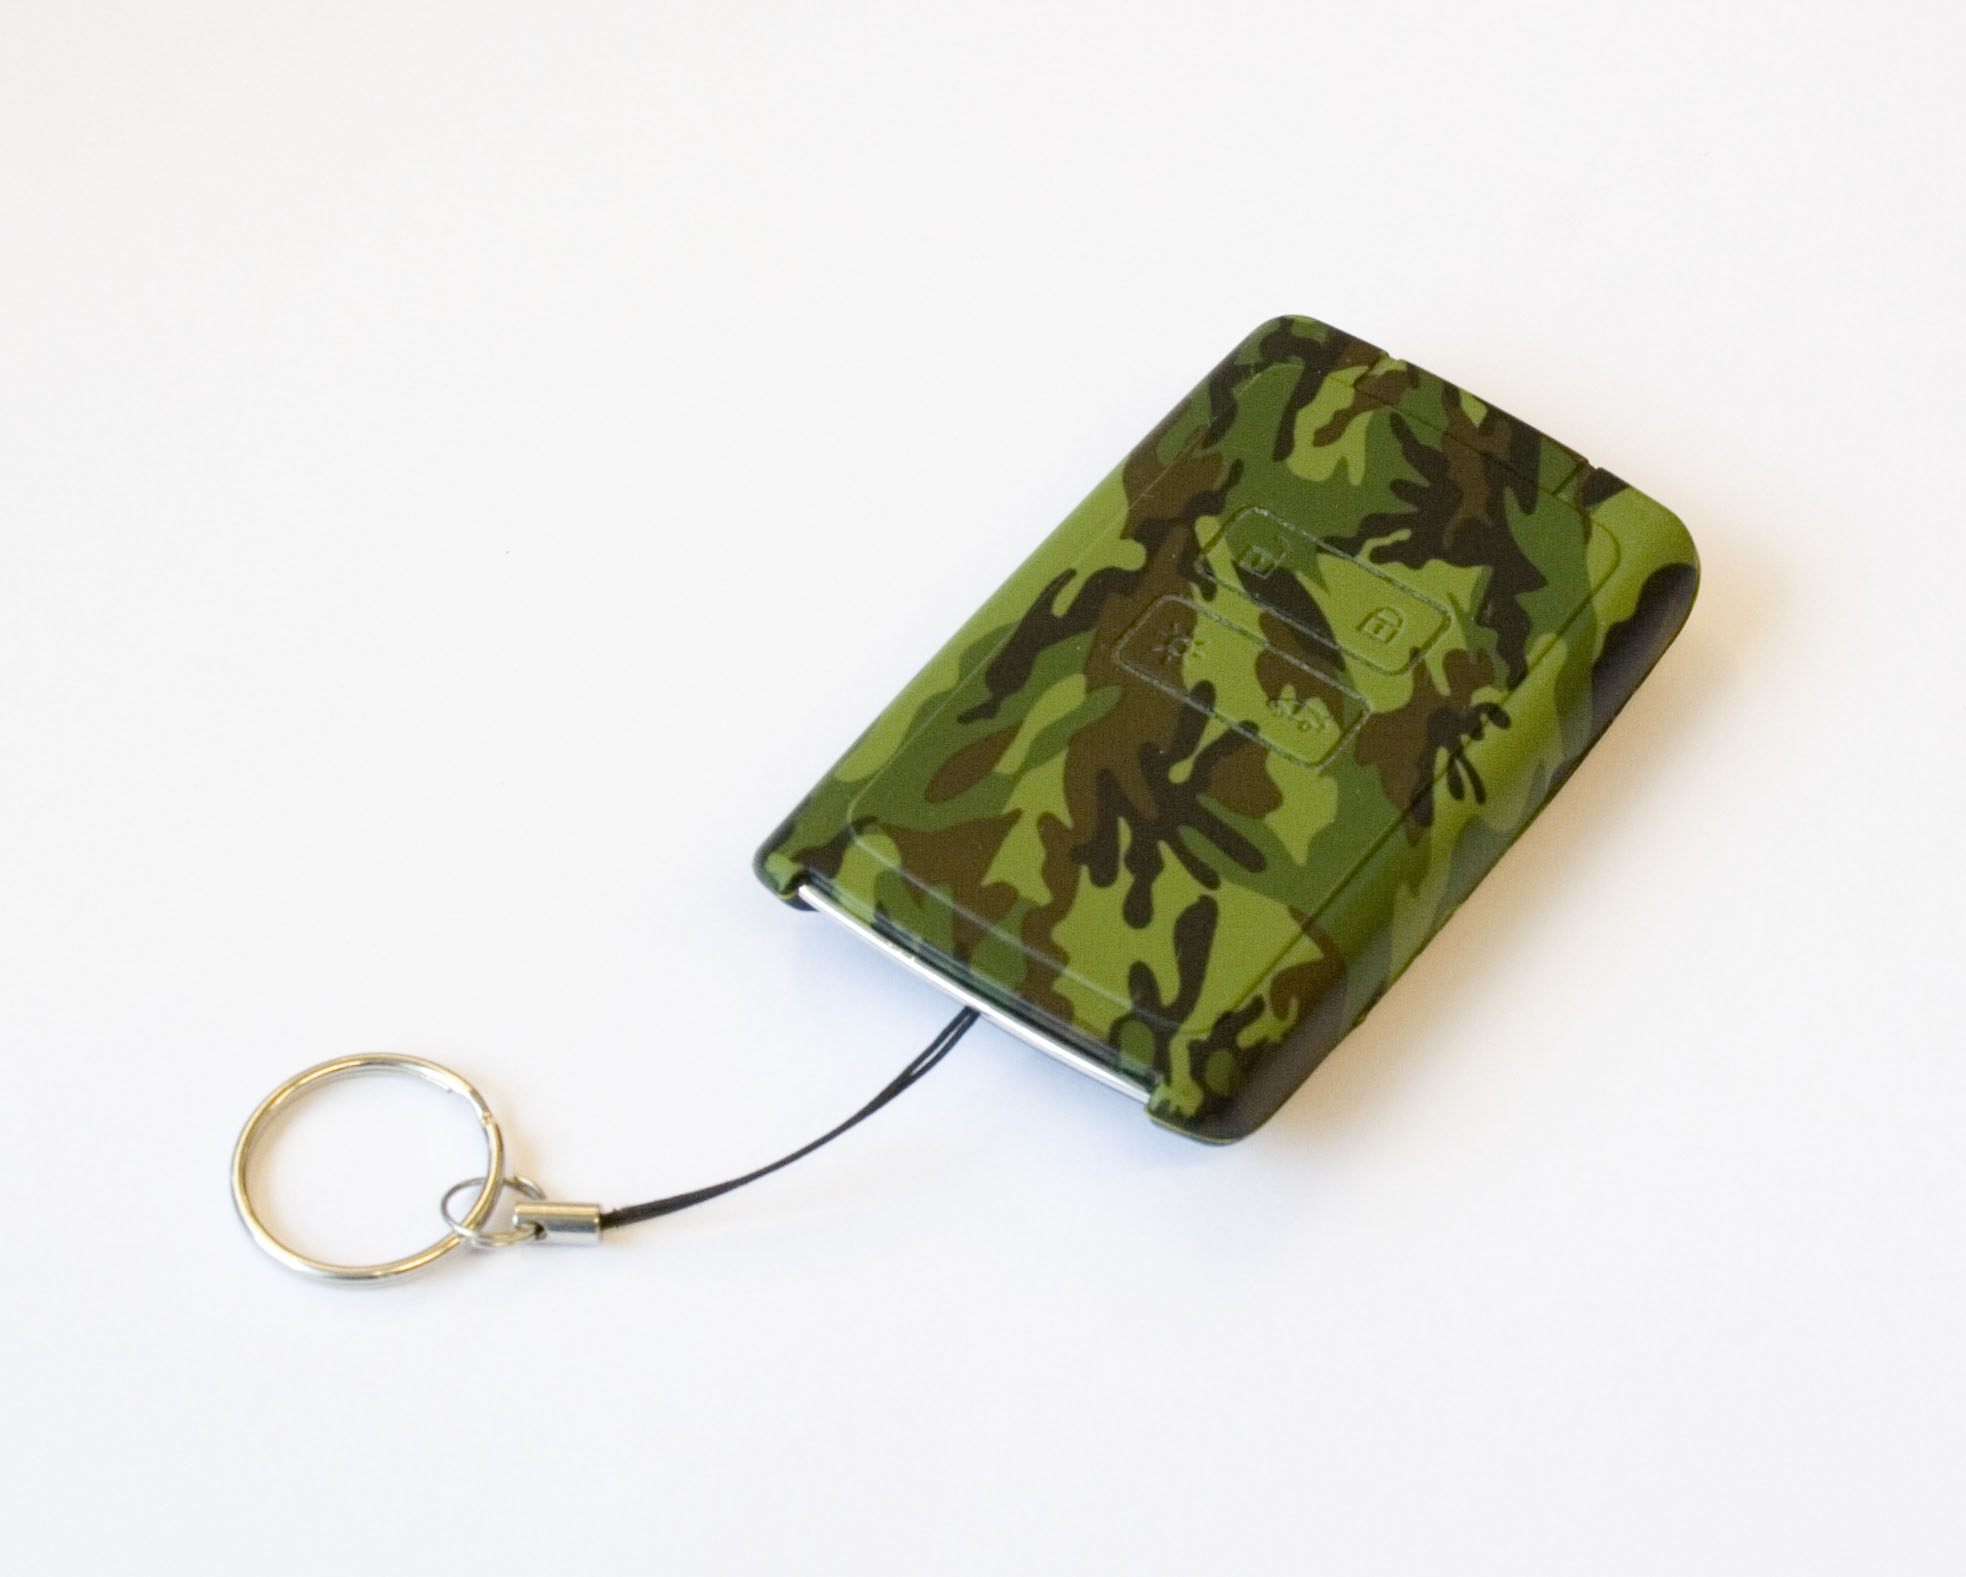 renault keycard cover ii typ c camouflage elia tuning 2. Black Bedroom Furniture Sets. Home Design Ideas